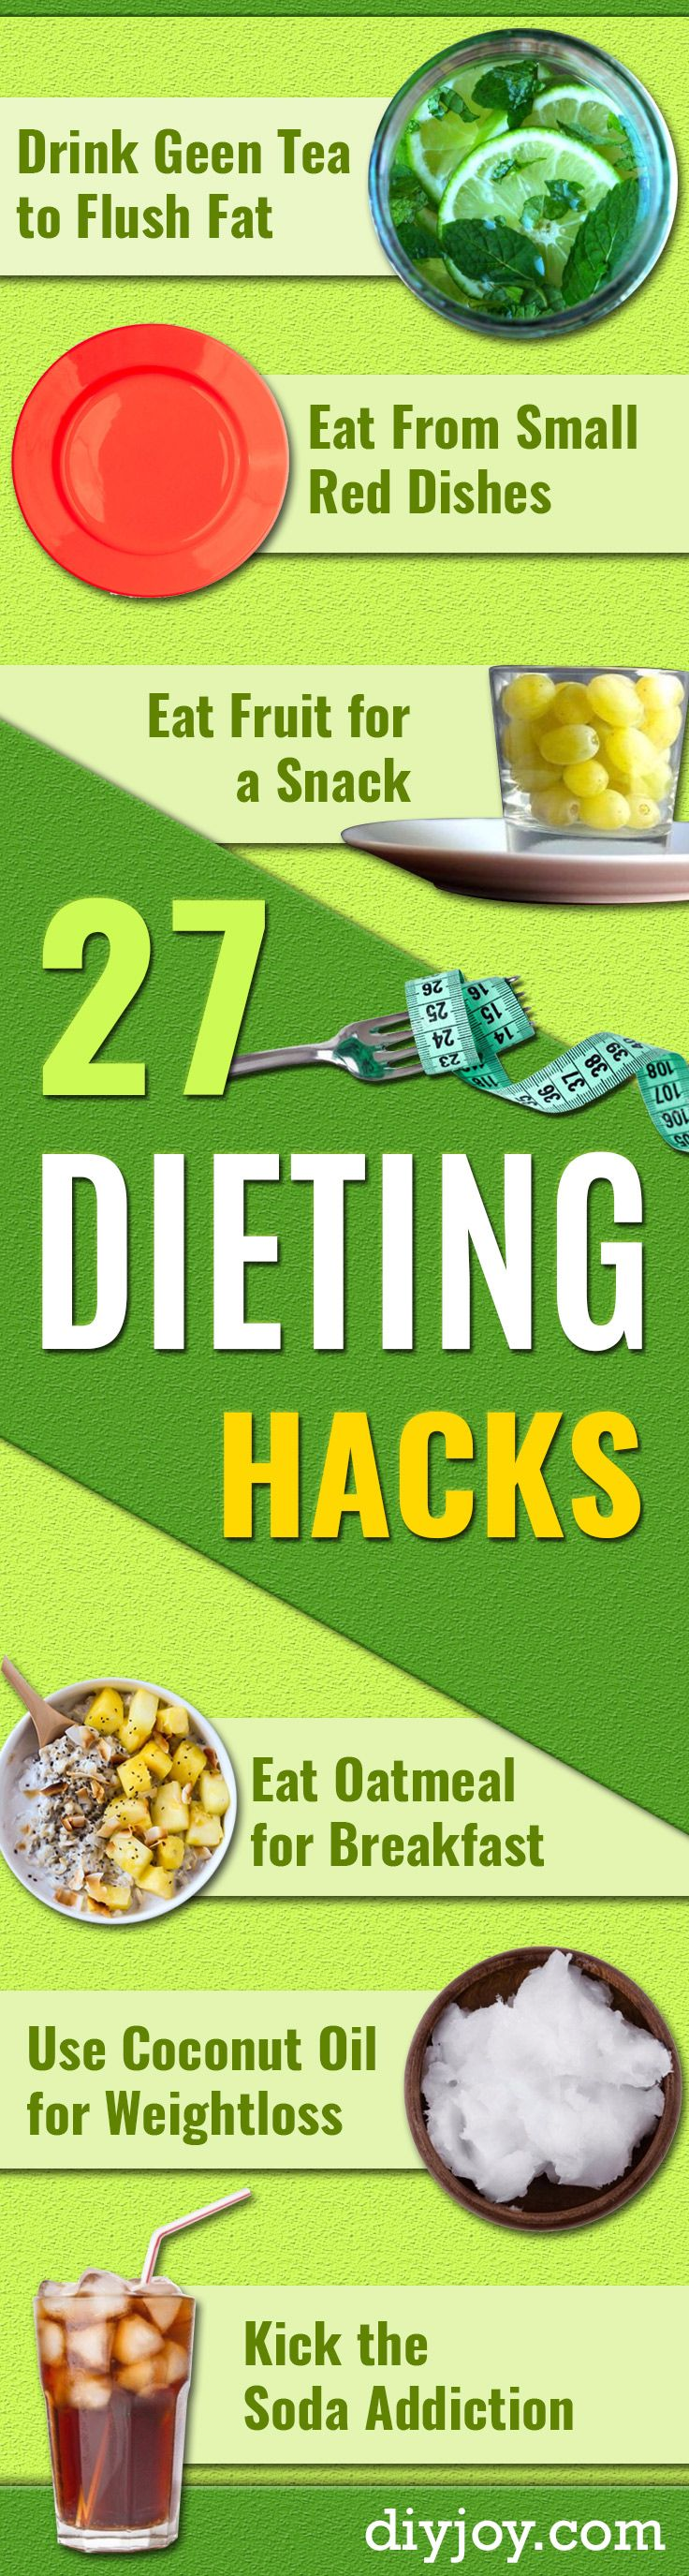 DIY Dieting Hacks - Lose Weight Fast With These Easy and Quick Way To Shed Pounds and Detox Your Body - Best Diet Recipes, Tips and Tricks for a Slimmer You http://diyjoy.com/dieting-hacks.